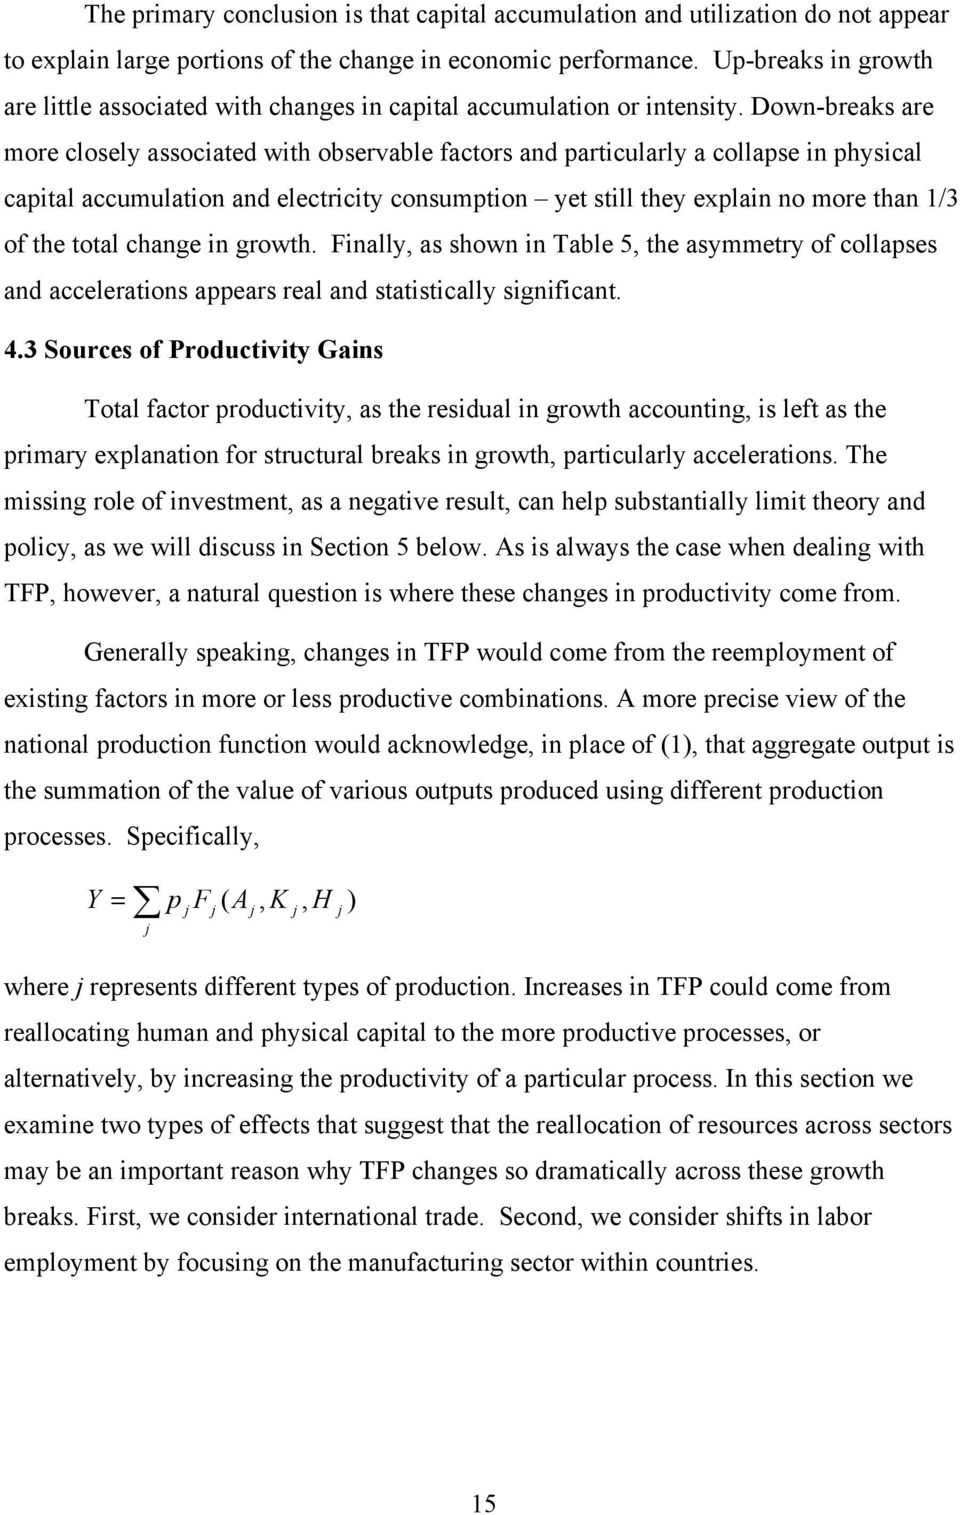 Down-breaks are more closely associated with observable factors and particularly a collapse in physical capital accumulation and electricity consumption yet still they explain no more than 1/3 of the